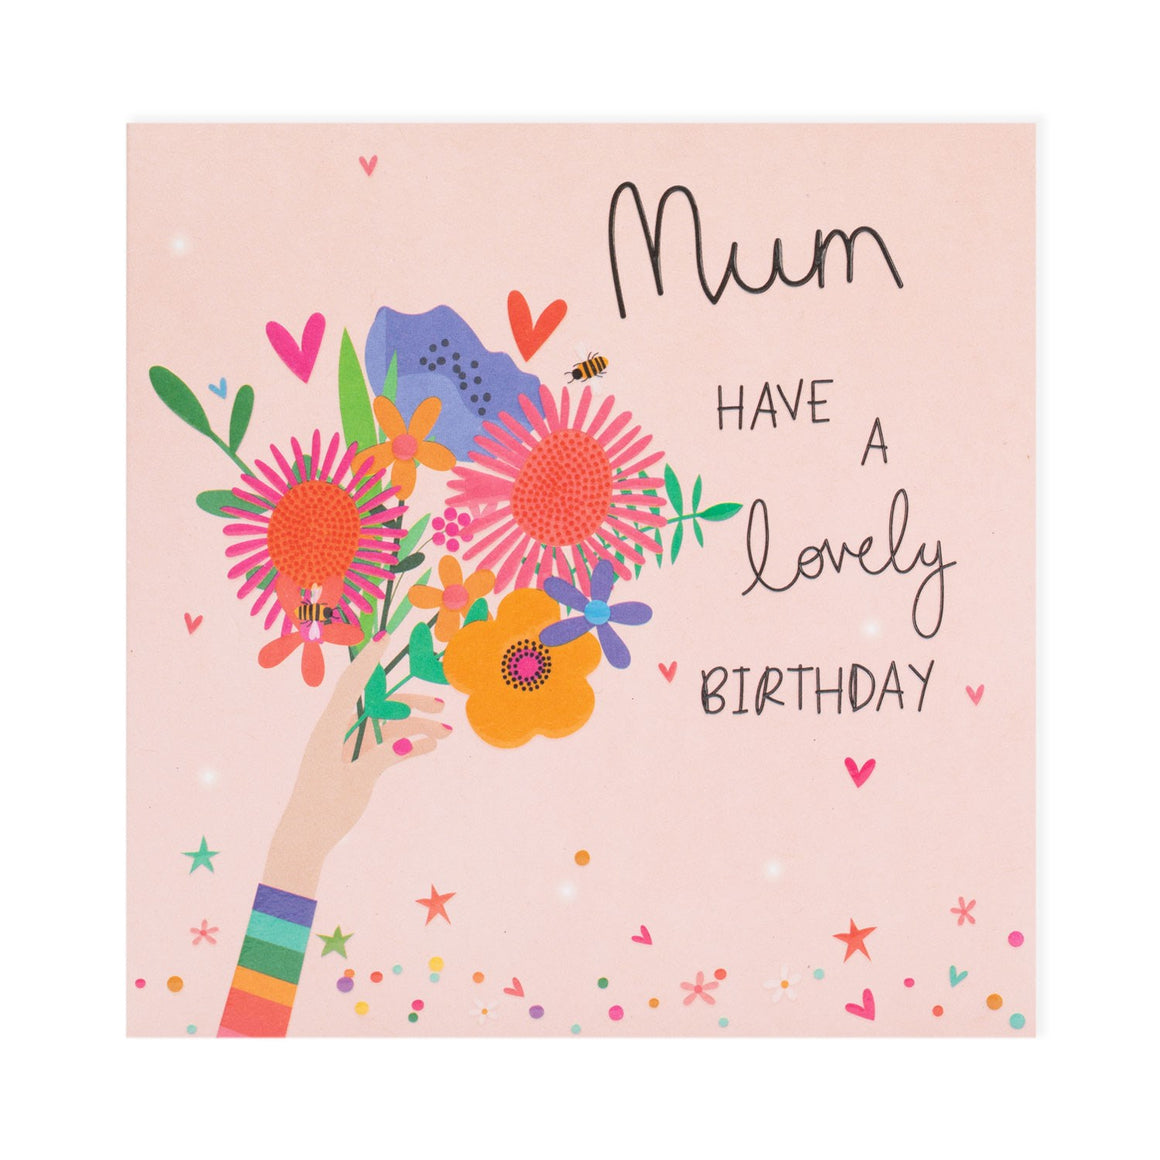 mum have a lovely birthday rainbow colours with a hand holding a bunch of flowers